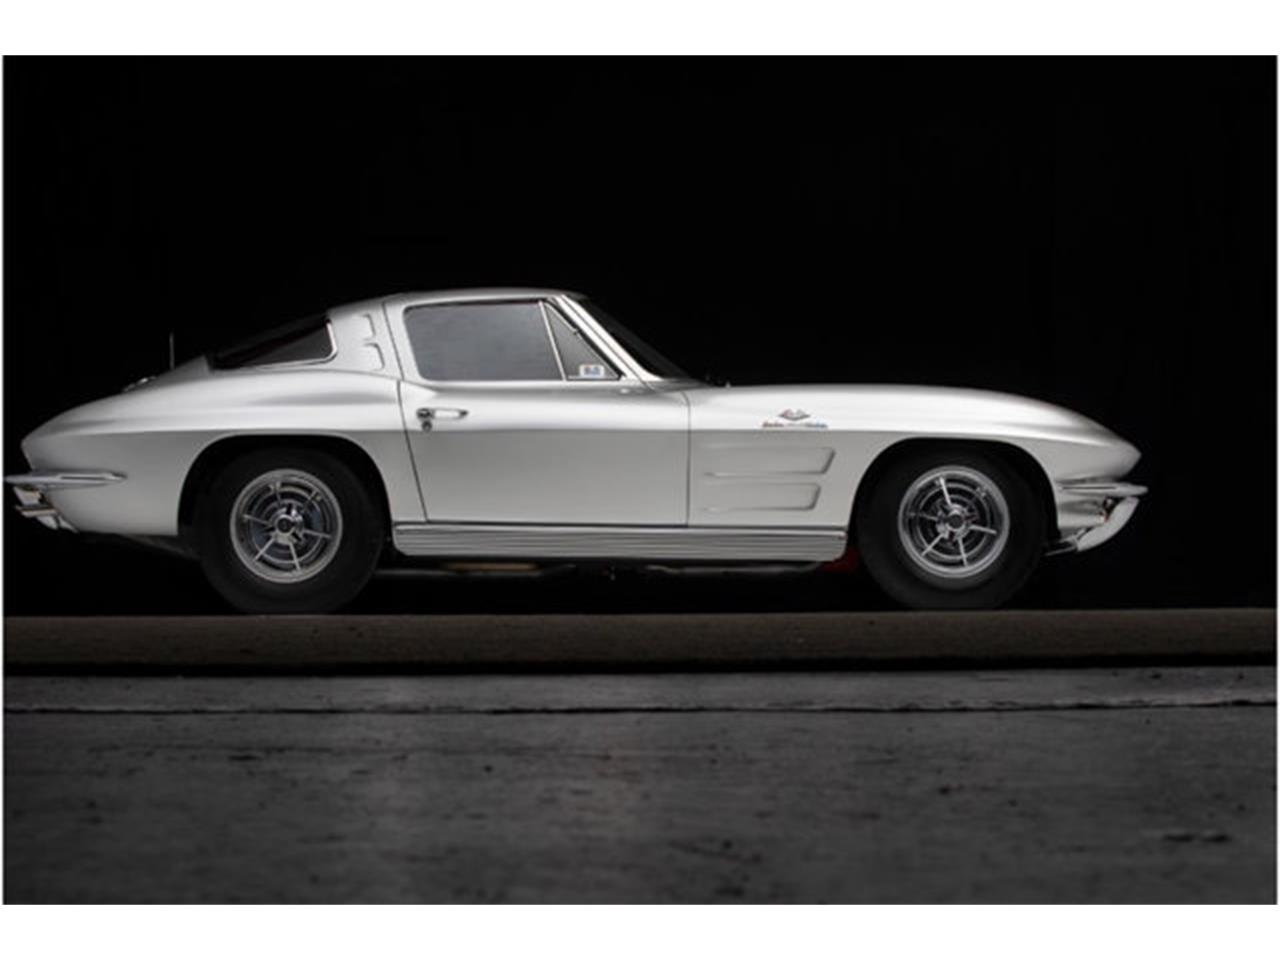 Large Picture of '63 Chevrolet Corvette located in Clifton Park New York Auction Vehicle - QOY3